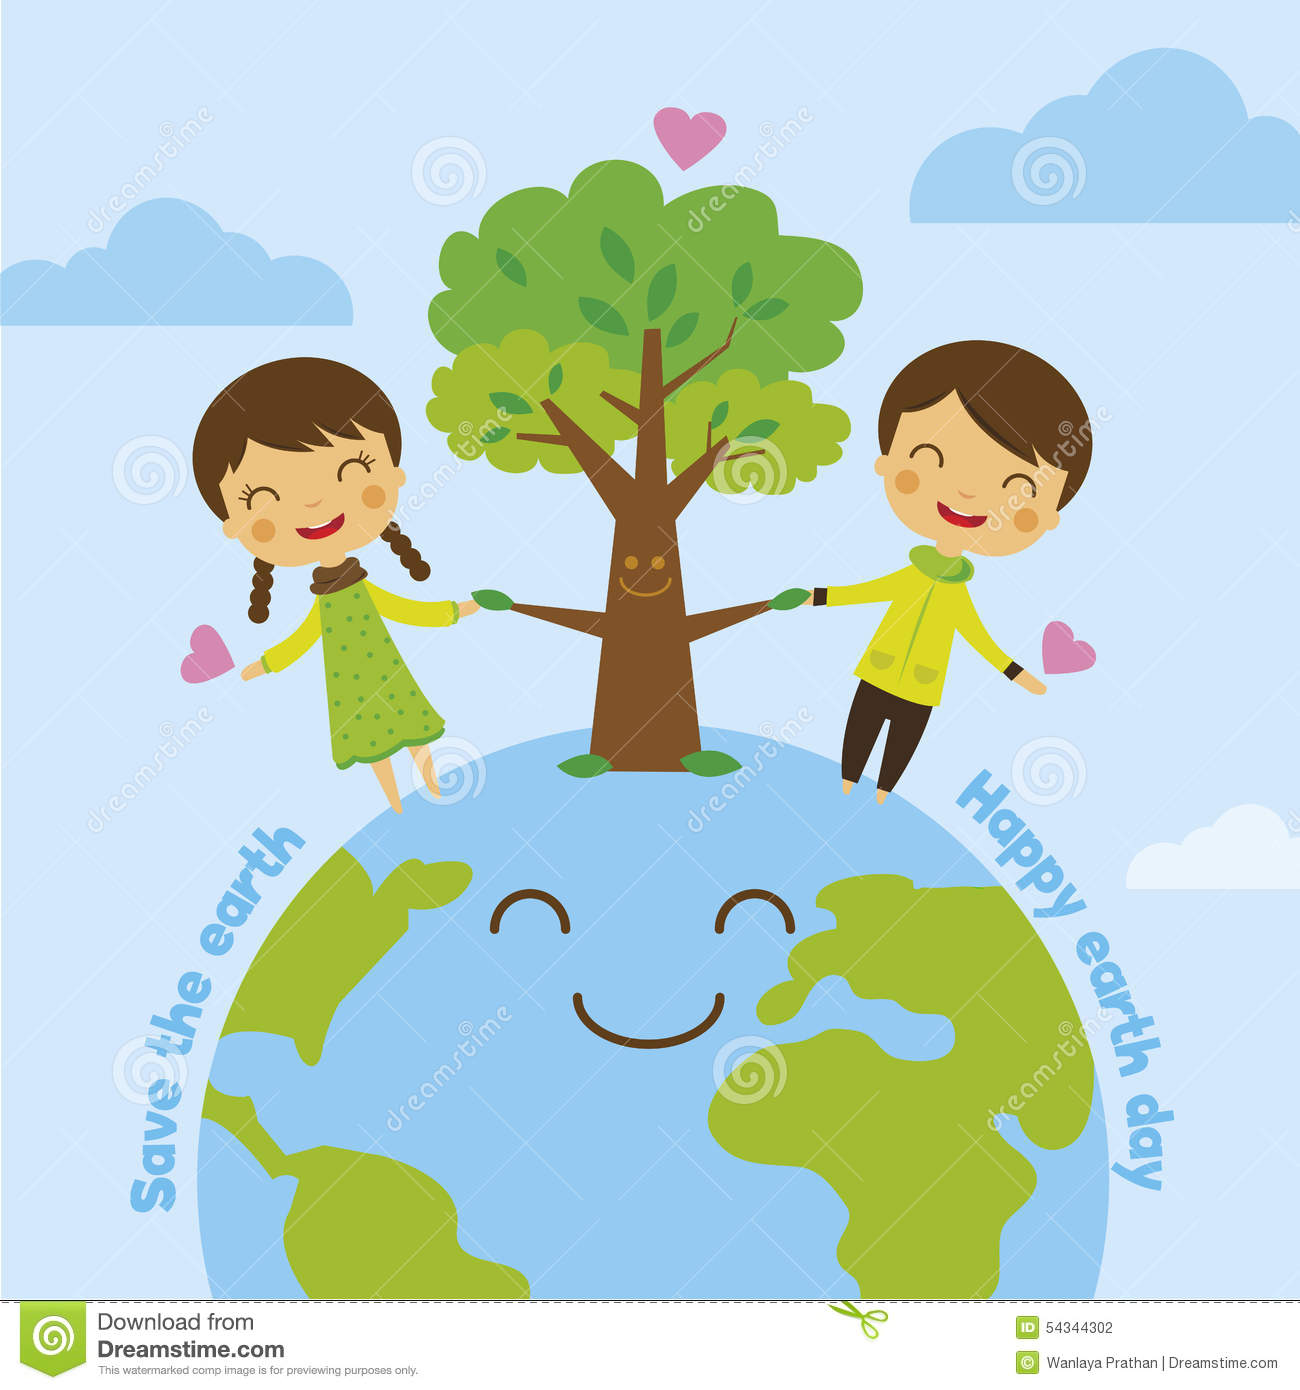 Plant trees save earth clipart 11 » Clipart Station.